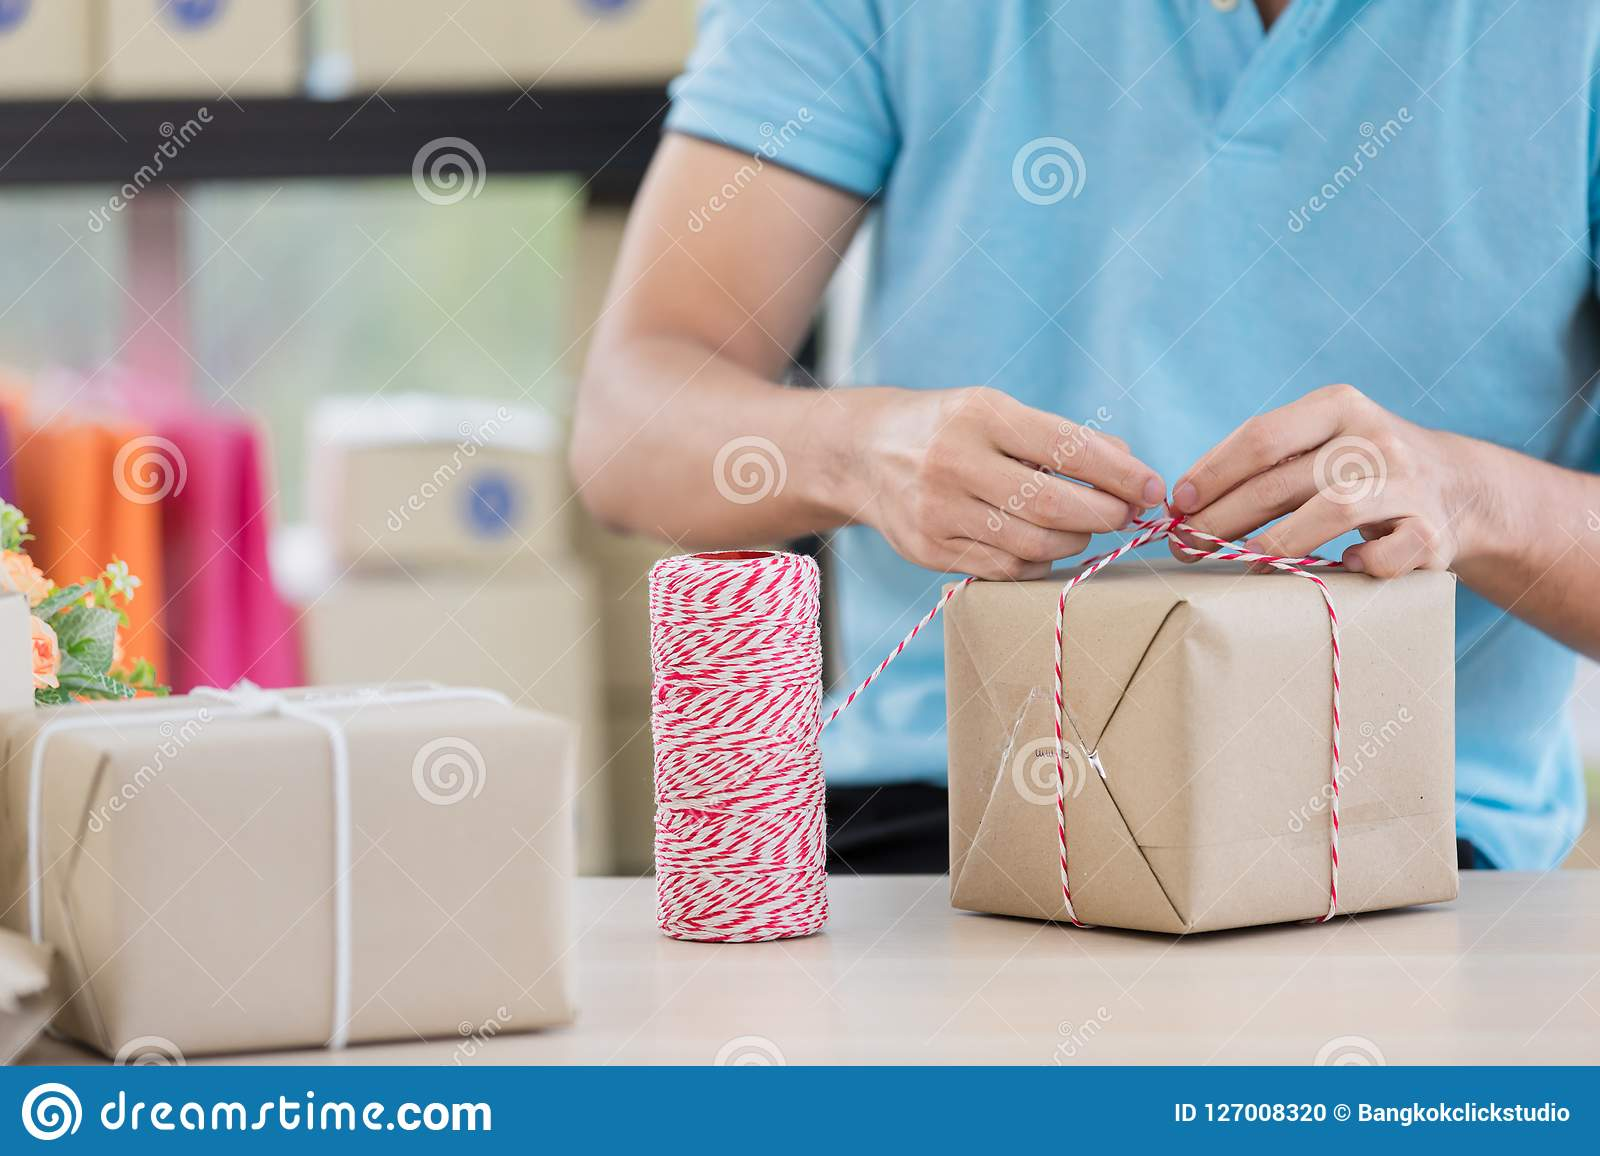 Asian businessman in casual shirt was is packing parcels, working in simple house office look like doing startup business.